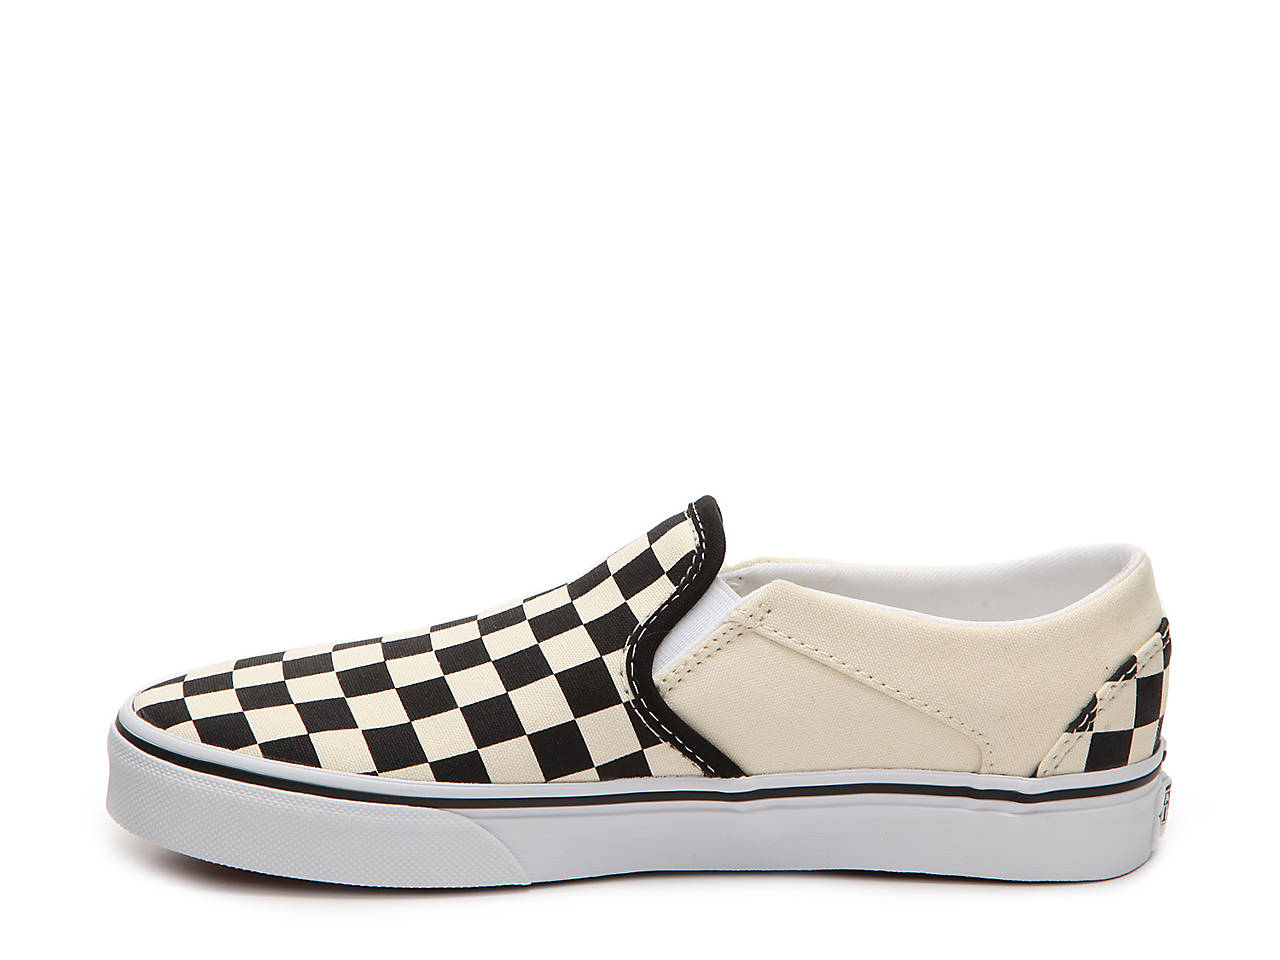 5660350f4a07de Vans Asher Slip-On Sneaker - Women s Women s Shoes